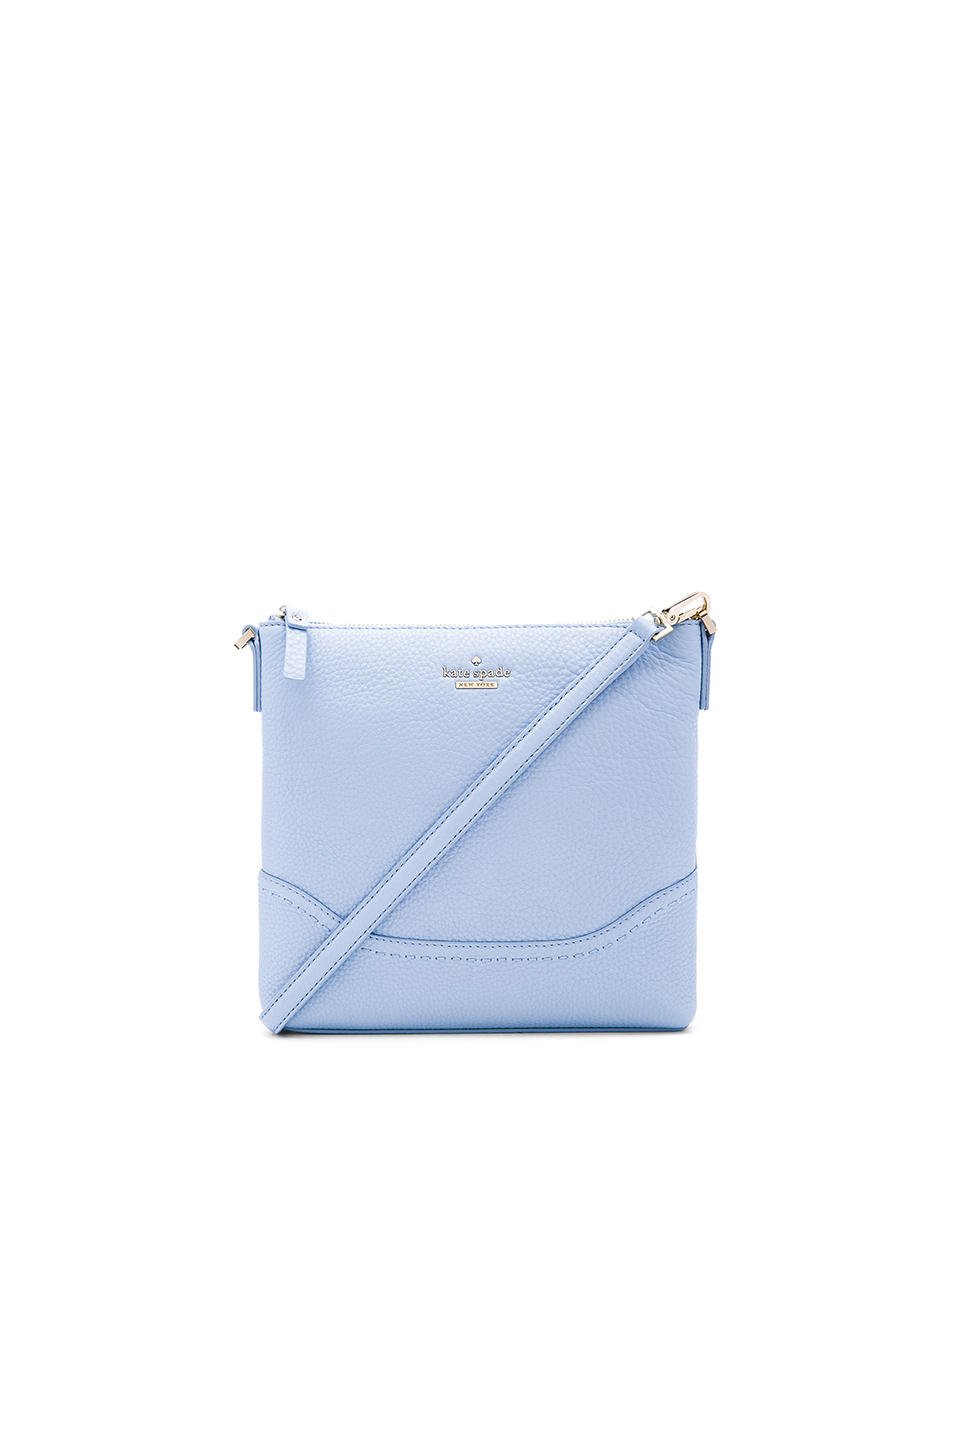 Kate Spade New York Jemma Leather Cross Body Bag In Blue